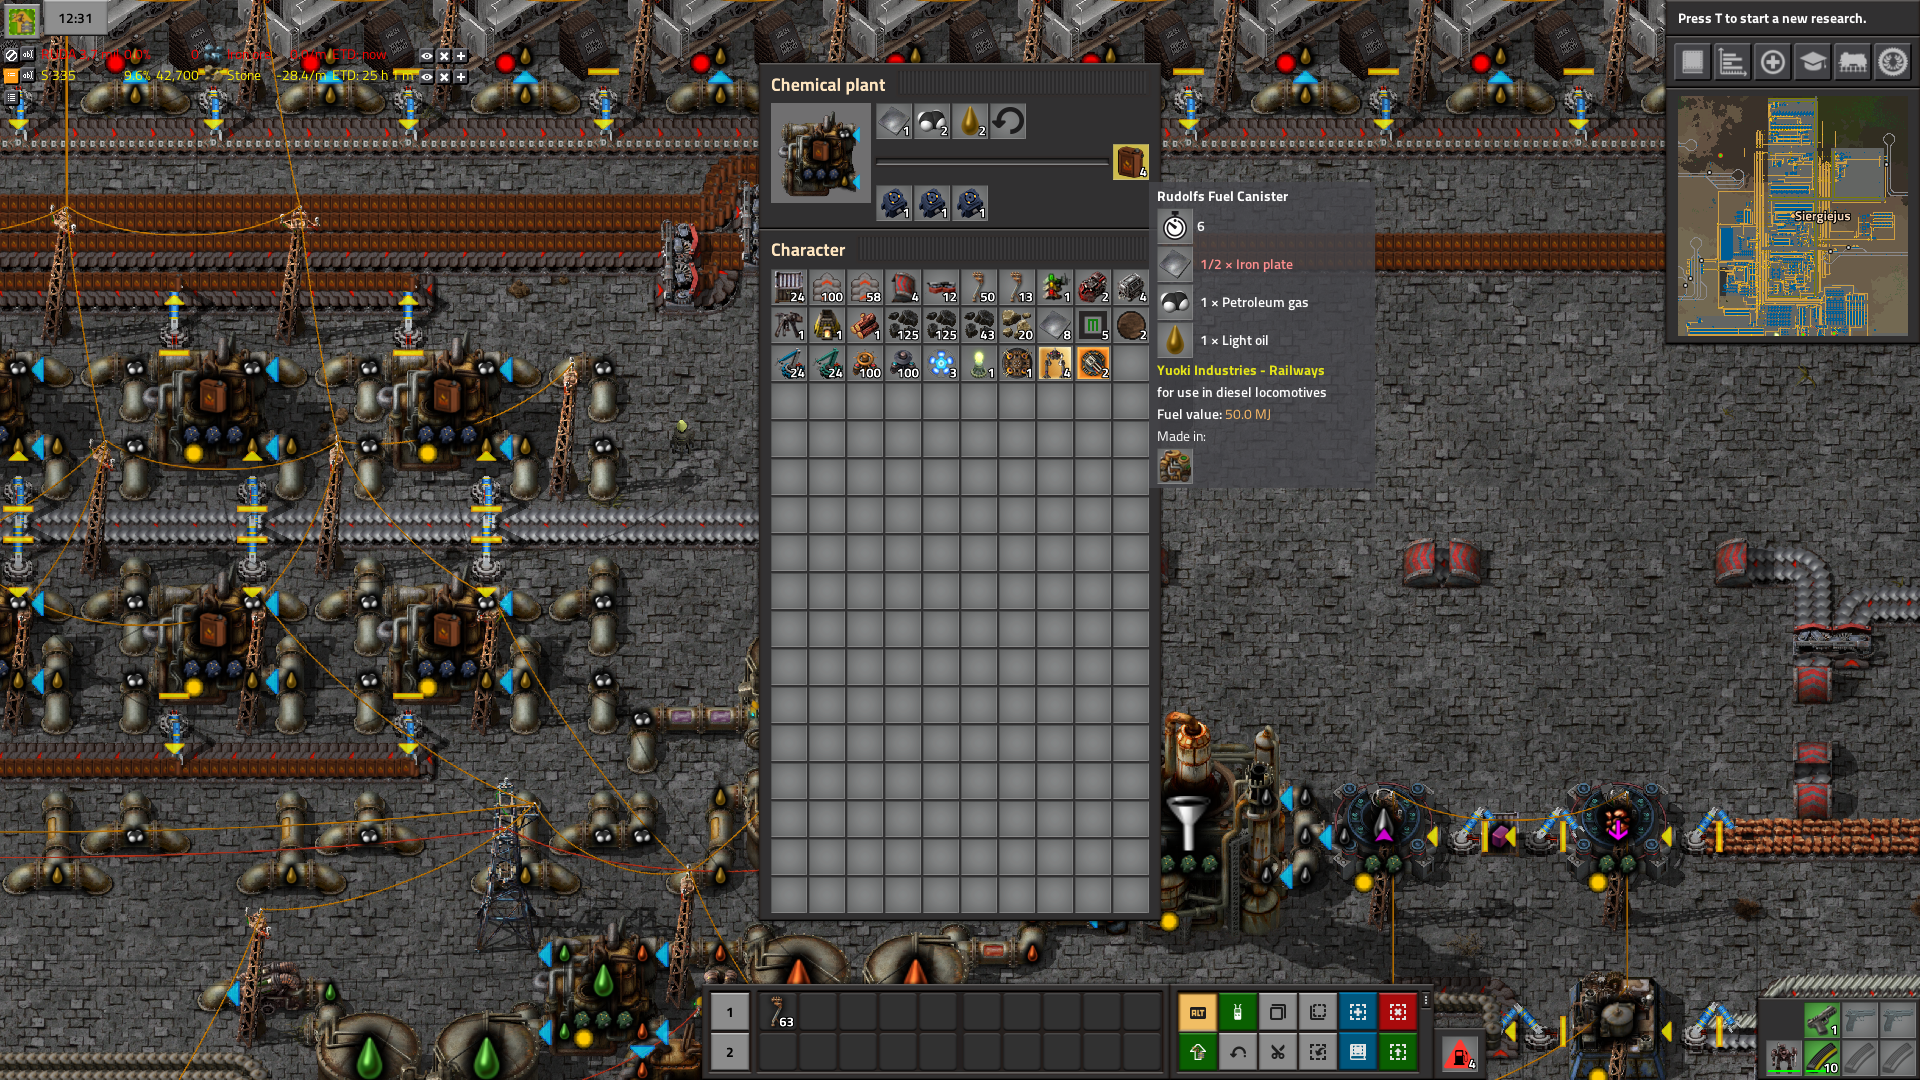 Factorio Screenshot 2019.06.10 - 23.11.42.43.png